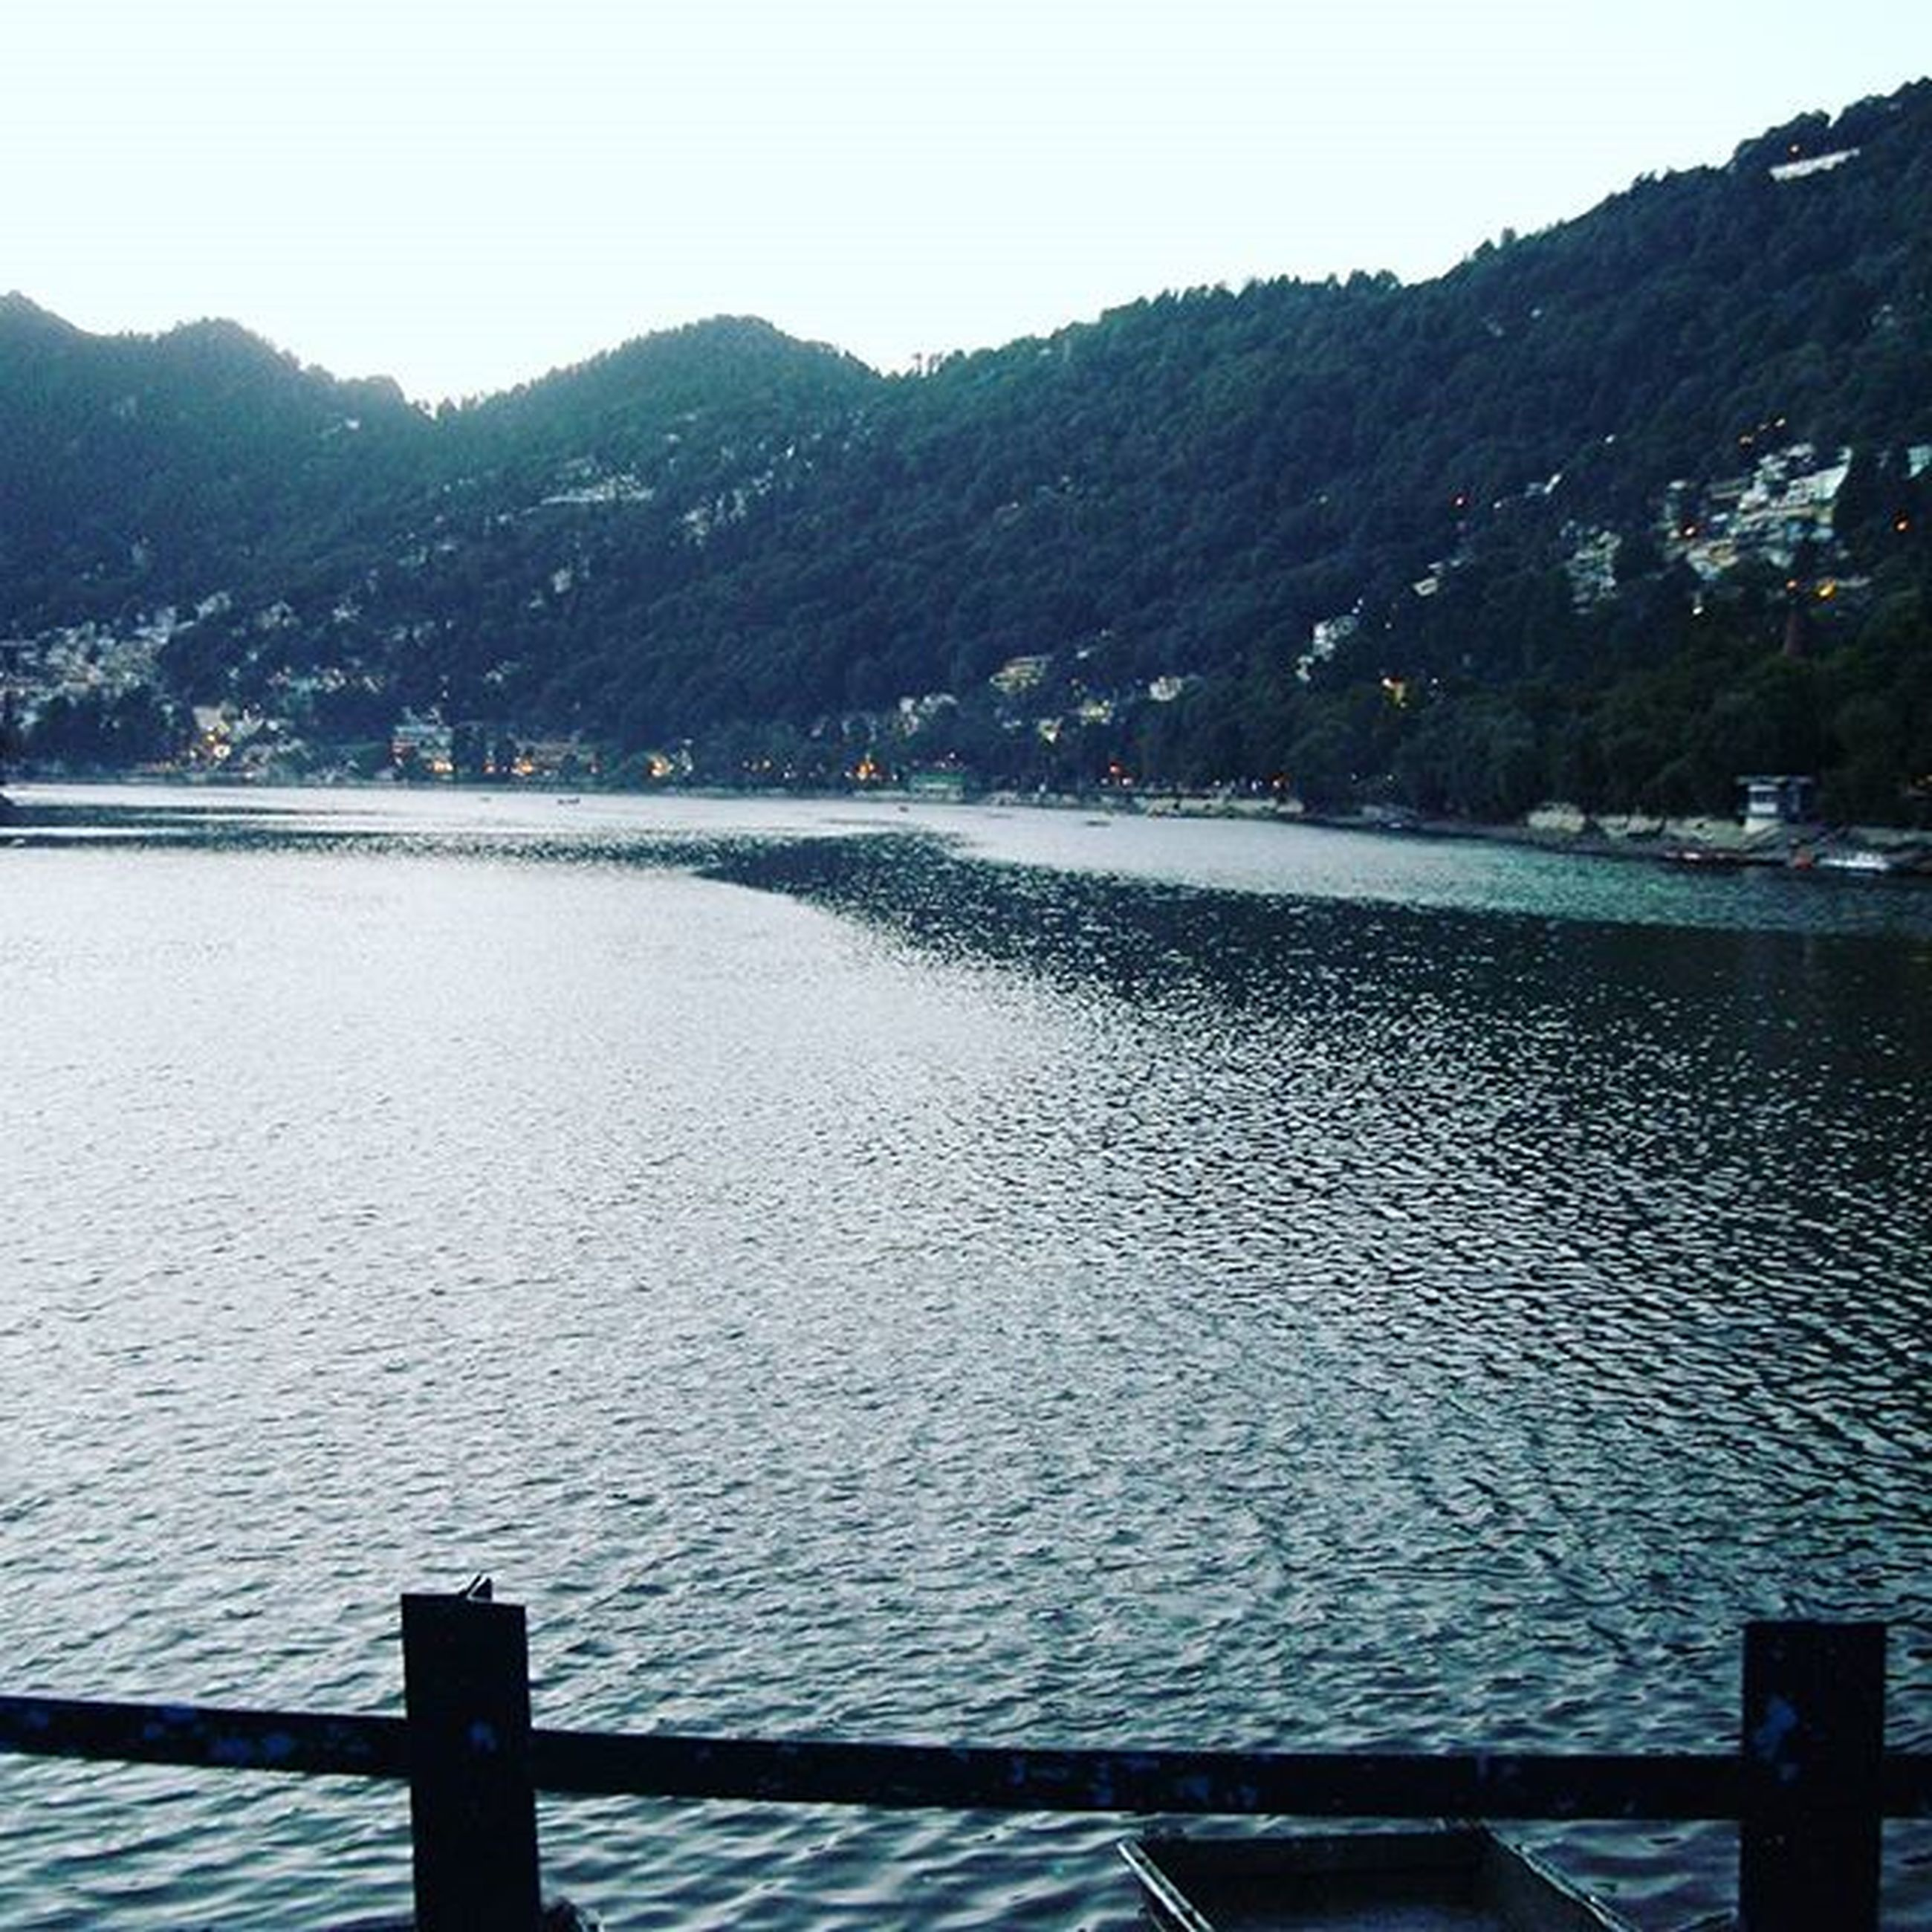 water, mountain, tranquil scene, tranquility, scenics, mountain range, beauty in nature, nature, clear sky, river, rippled, lake, sky, sea, built structure, railing, pier, idyllic, outdoors, day